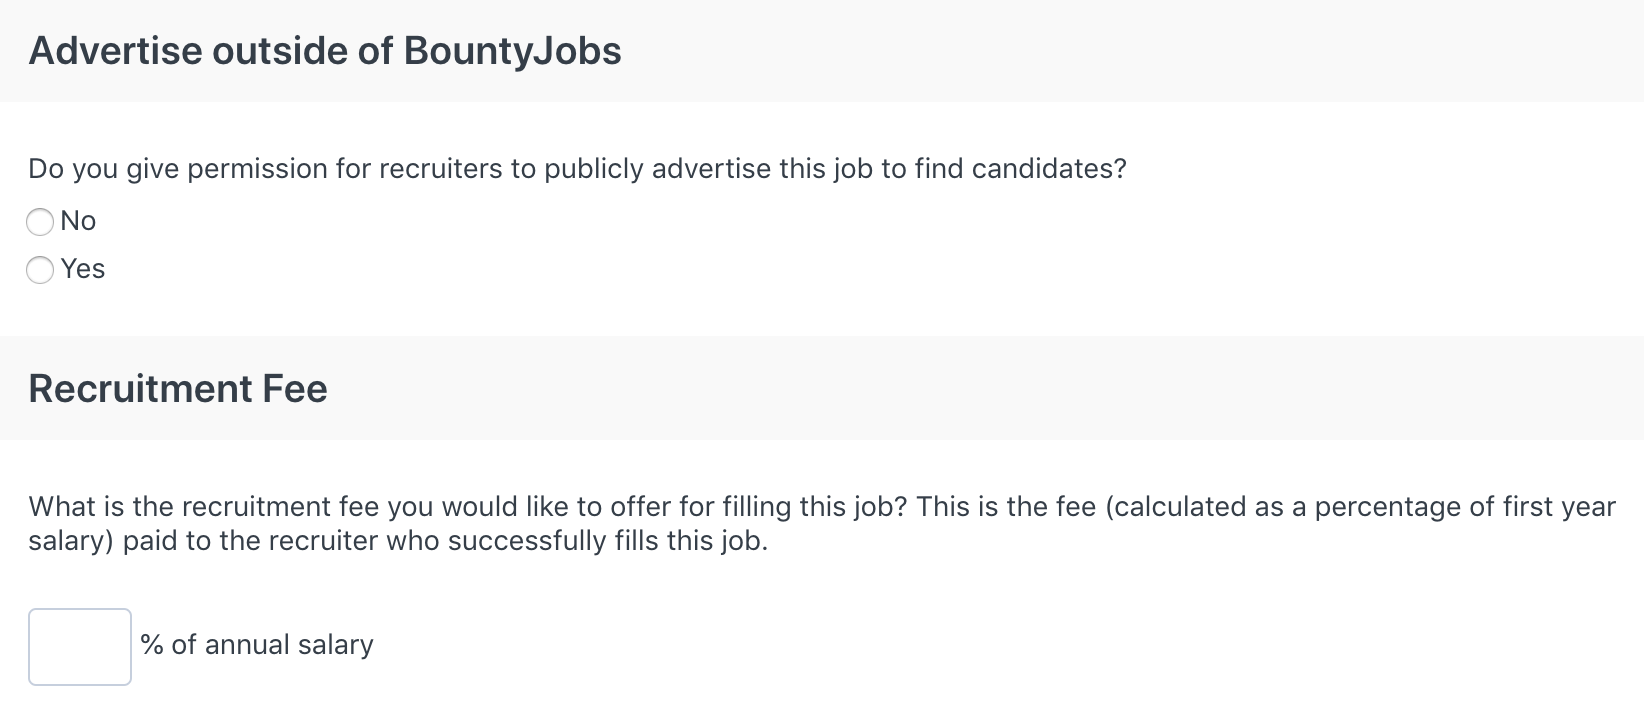 bountyjobs_advertise_options.png